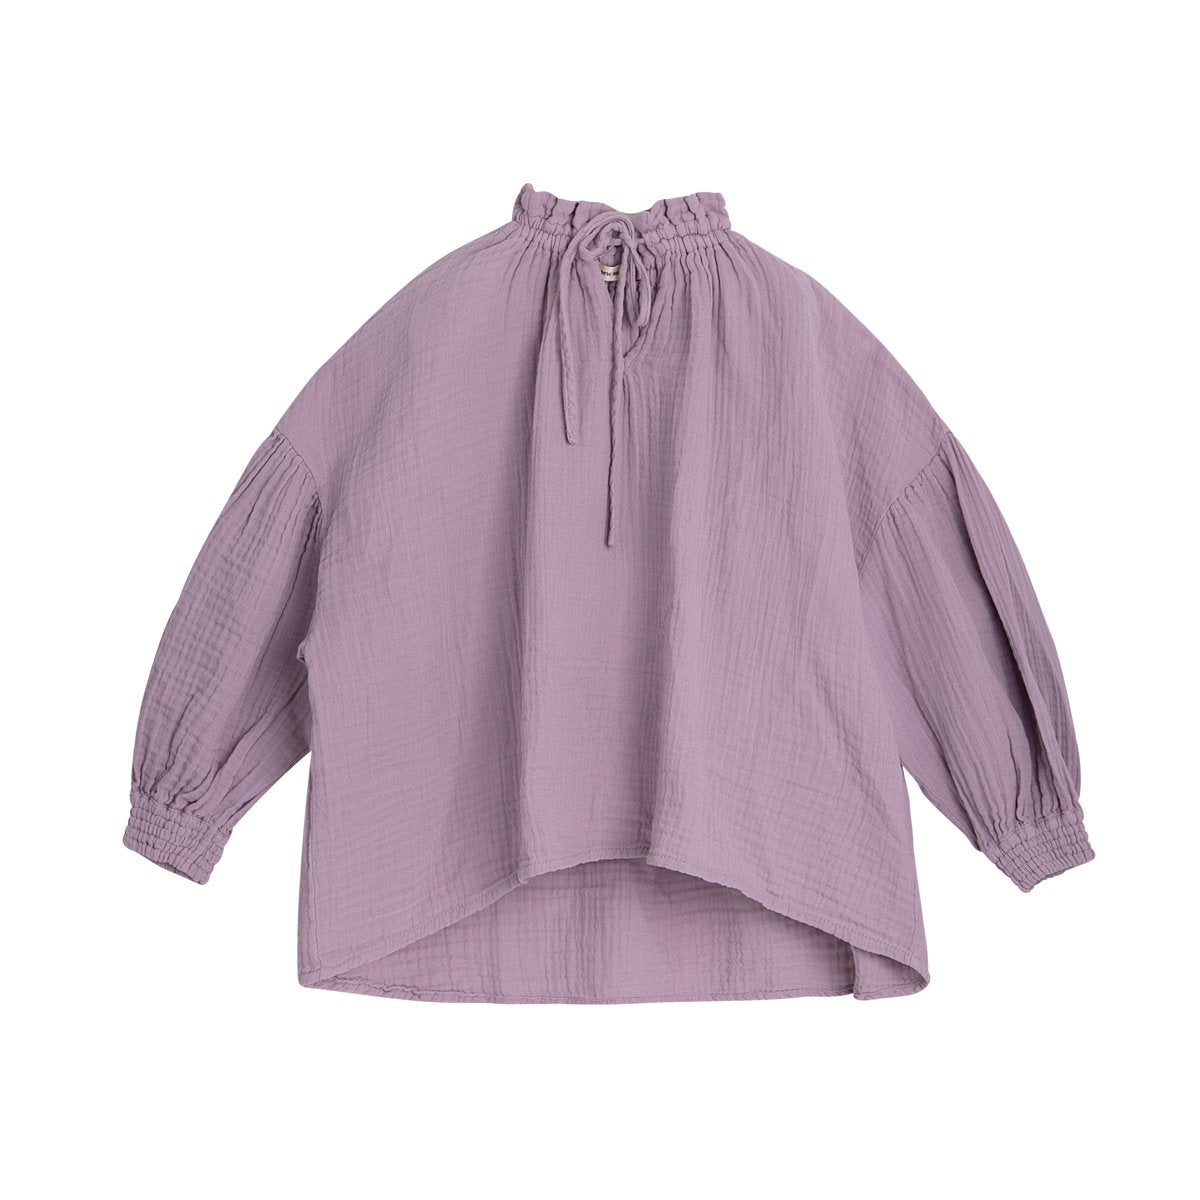 The New Society Olivia Blouse